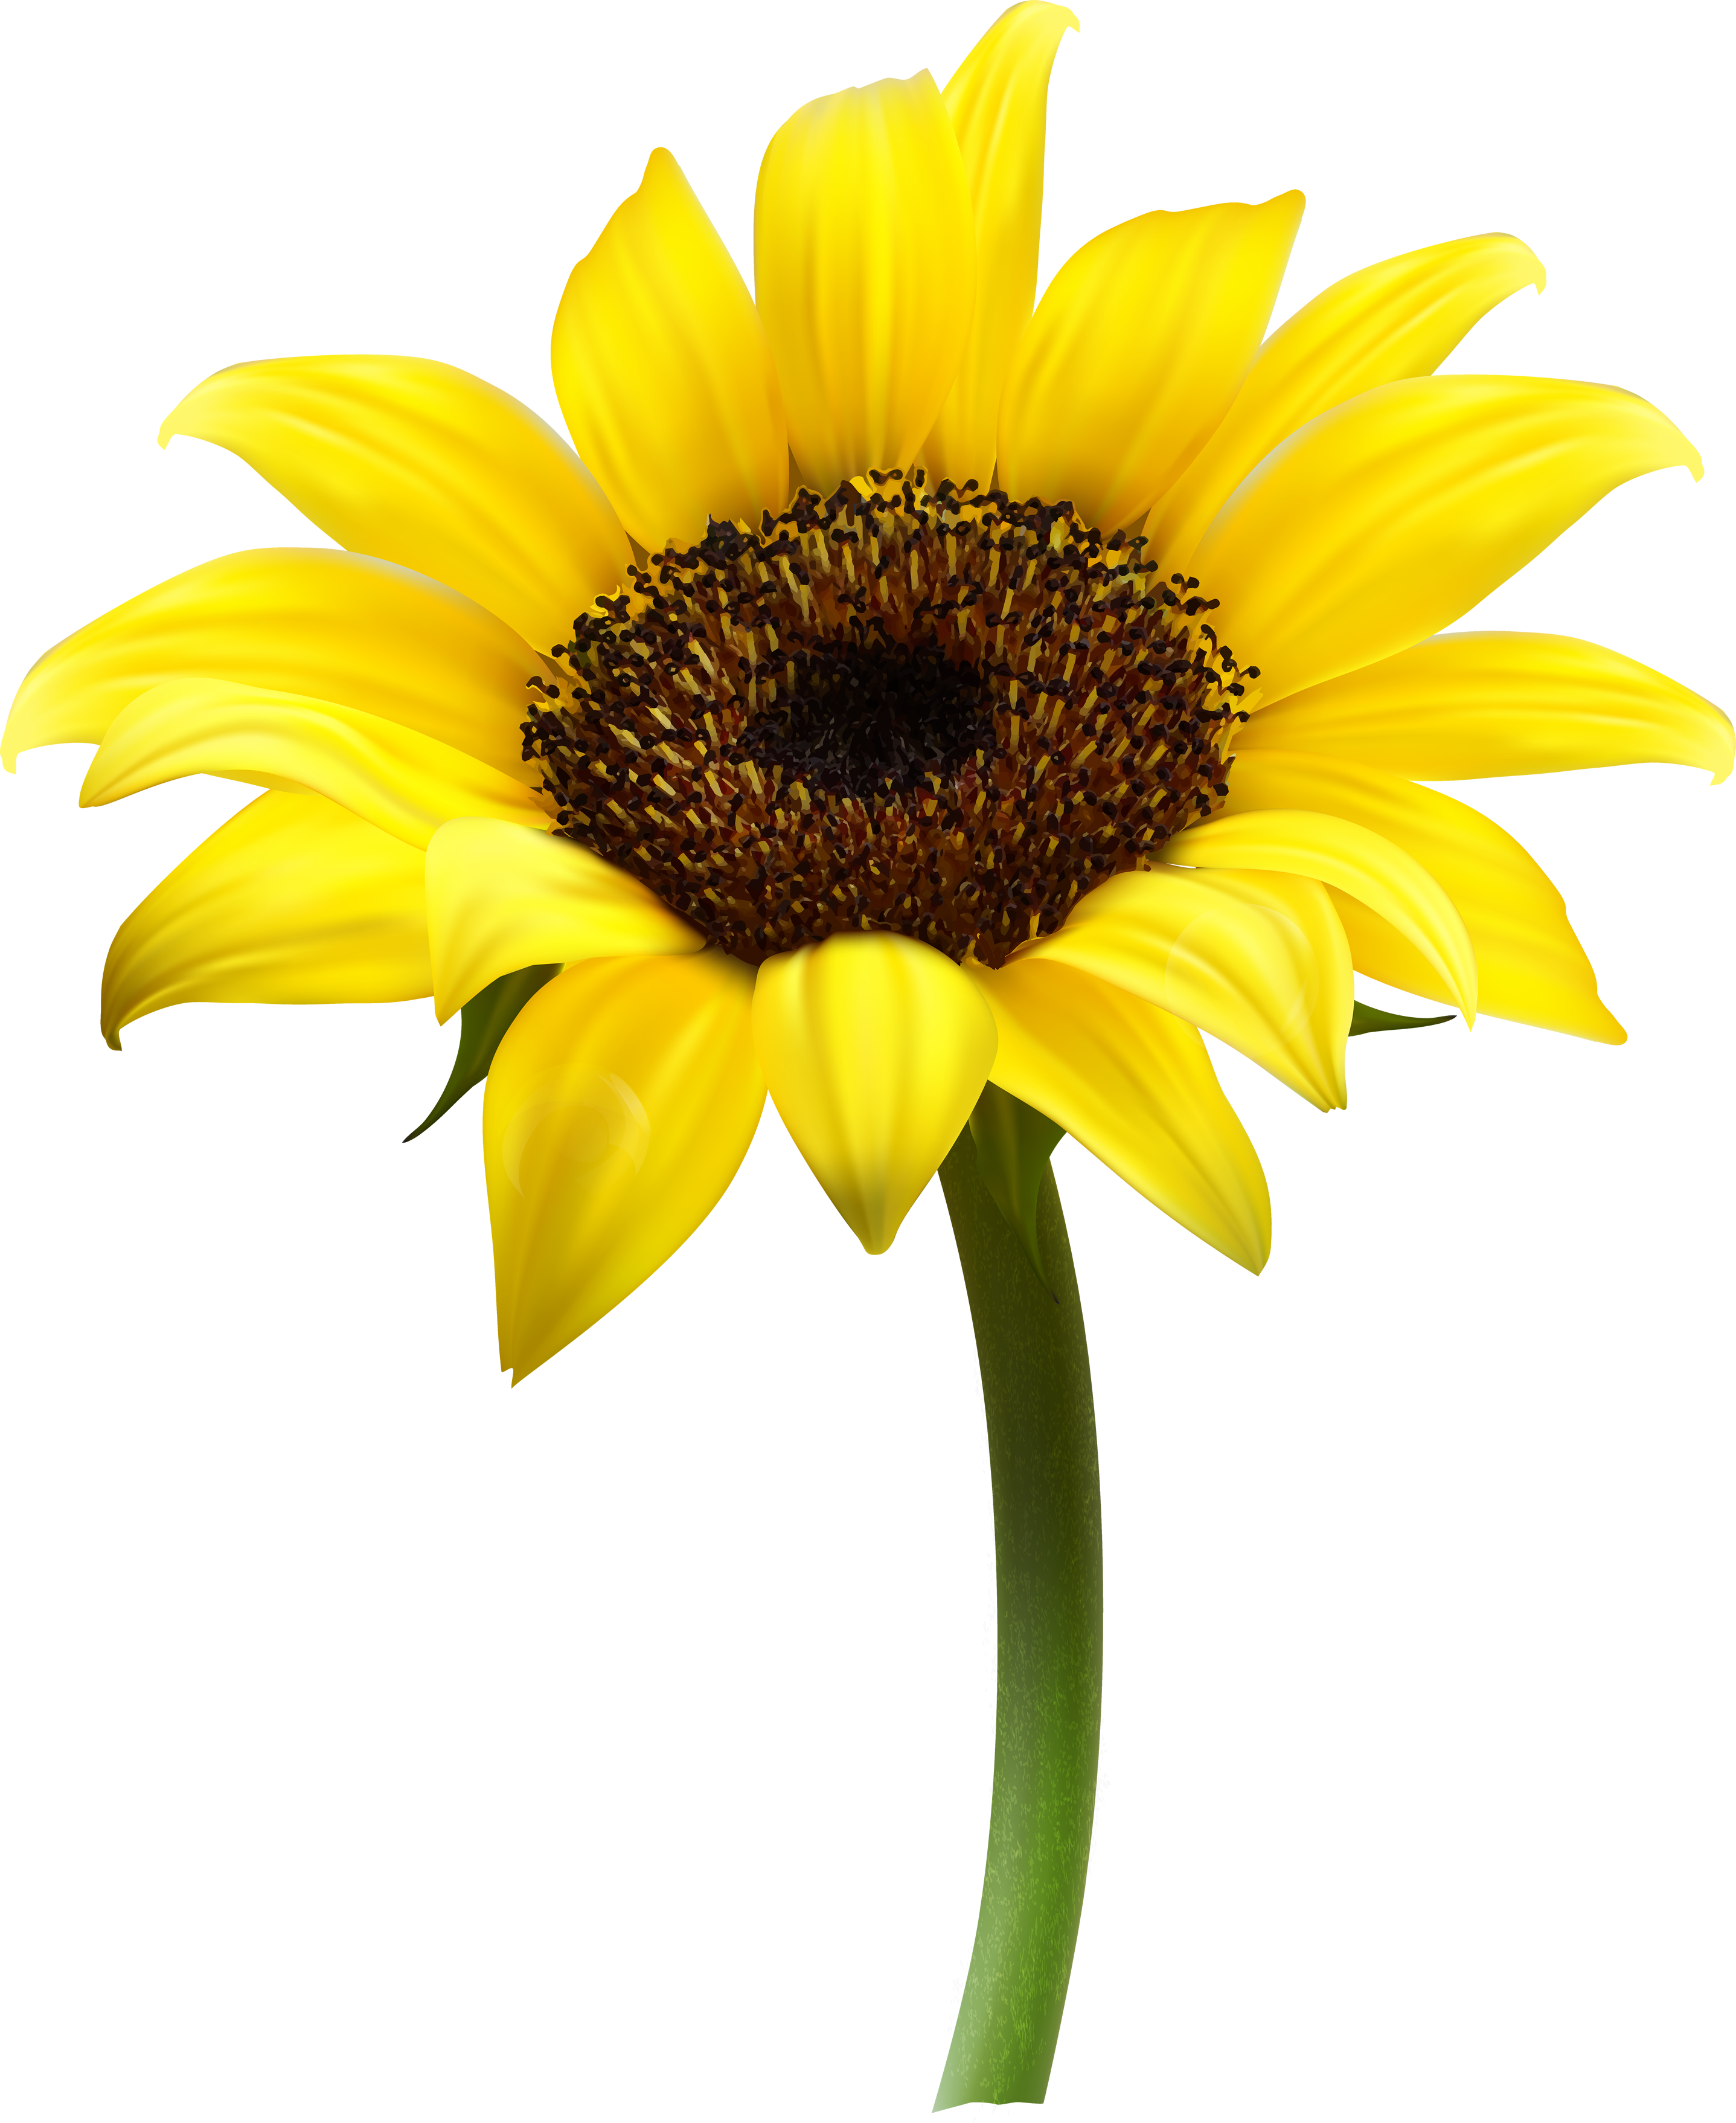 Sunflower sun clipart image stock Sunflower PNG images free download image stock